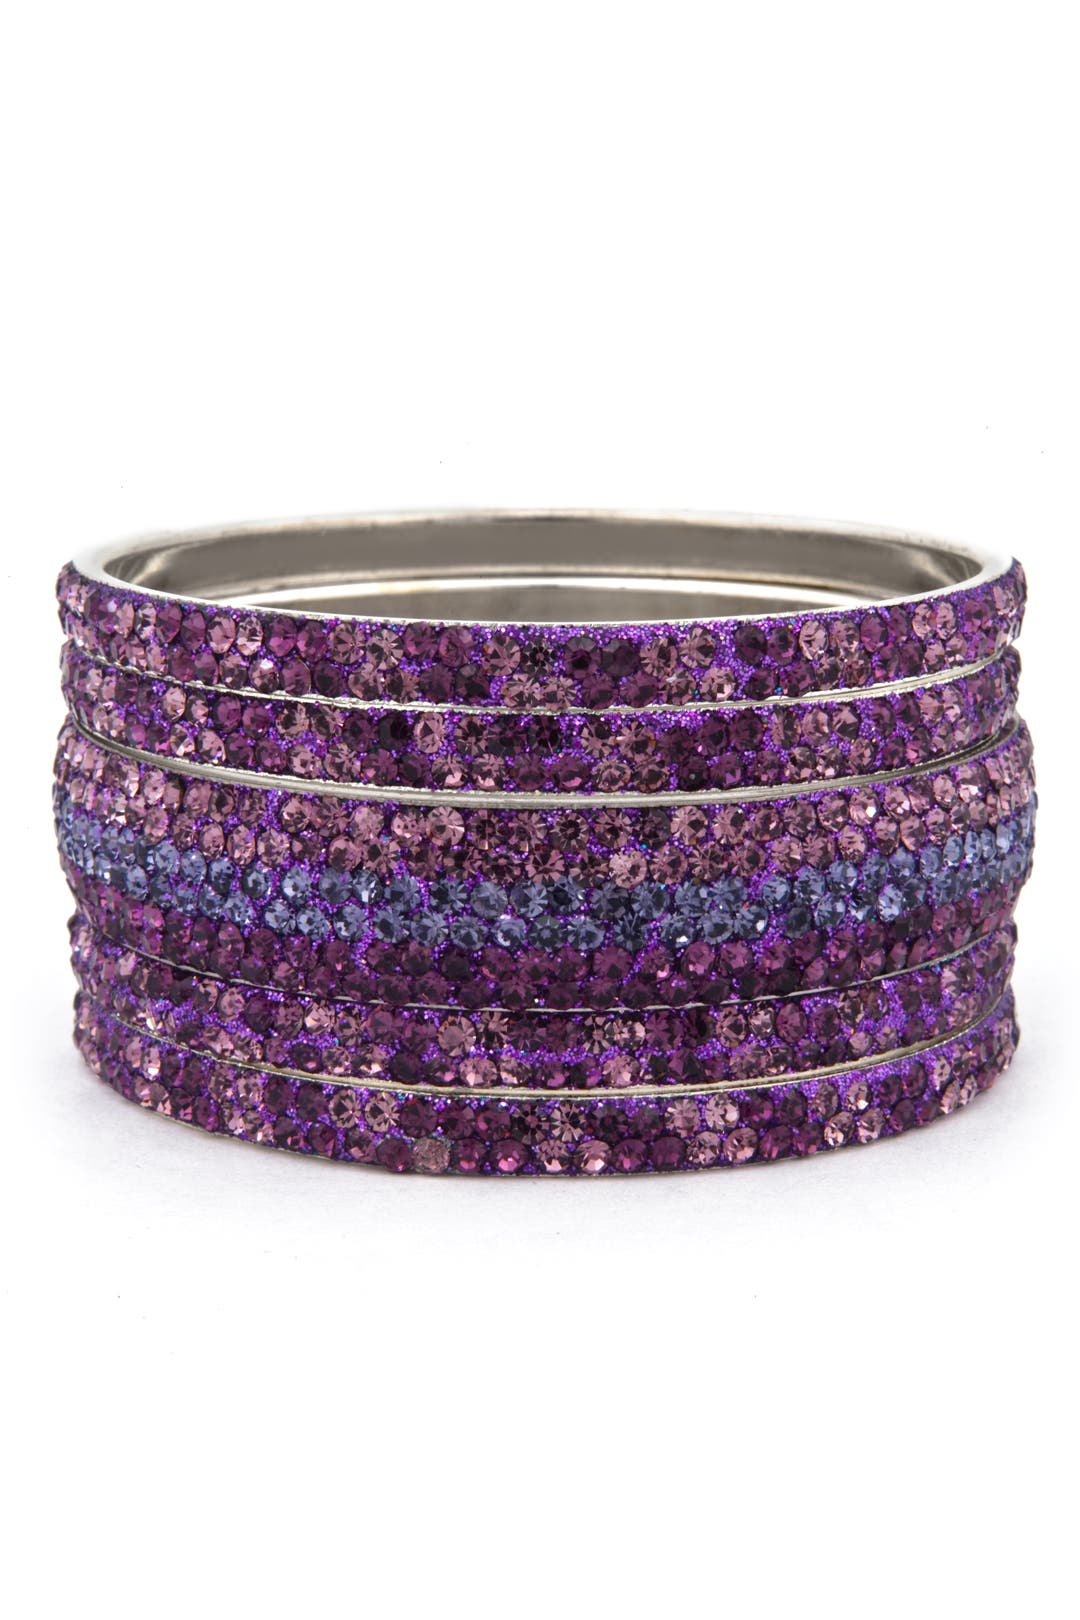 Perfect Plum Bangle Set by Chamak by Priya Kakkar